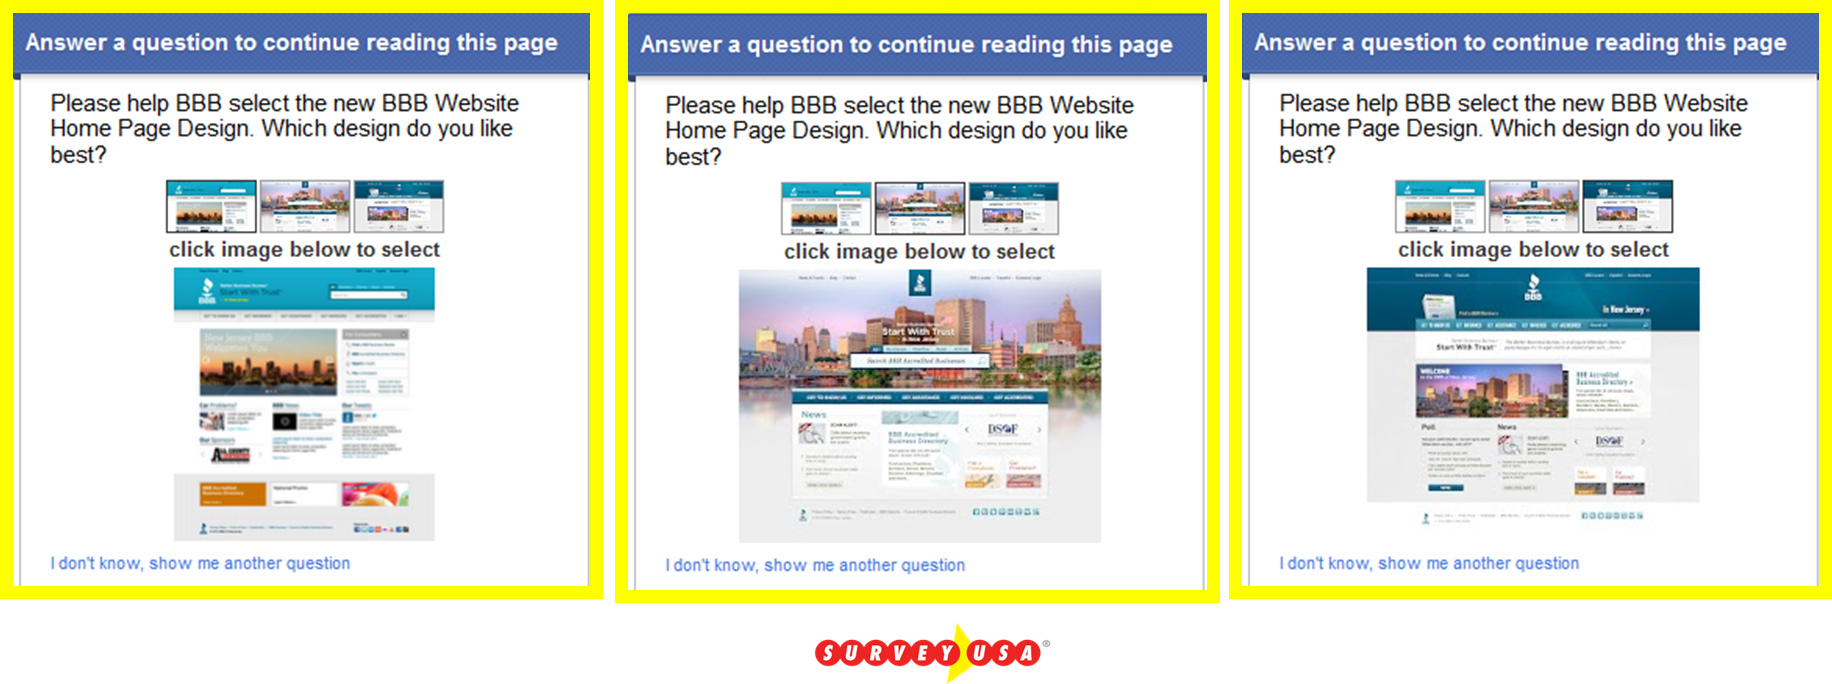 3O Please help BBB select the new BBB website home page design